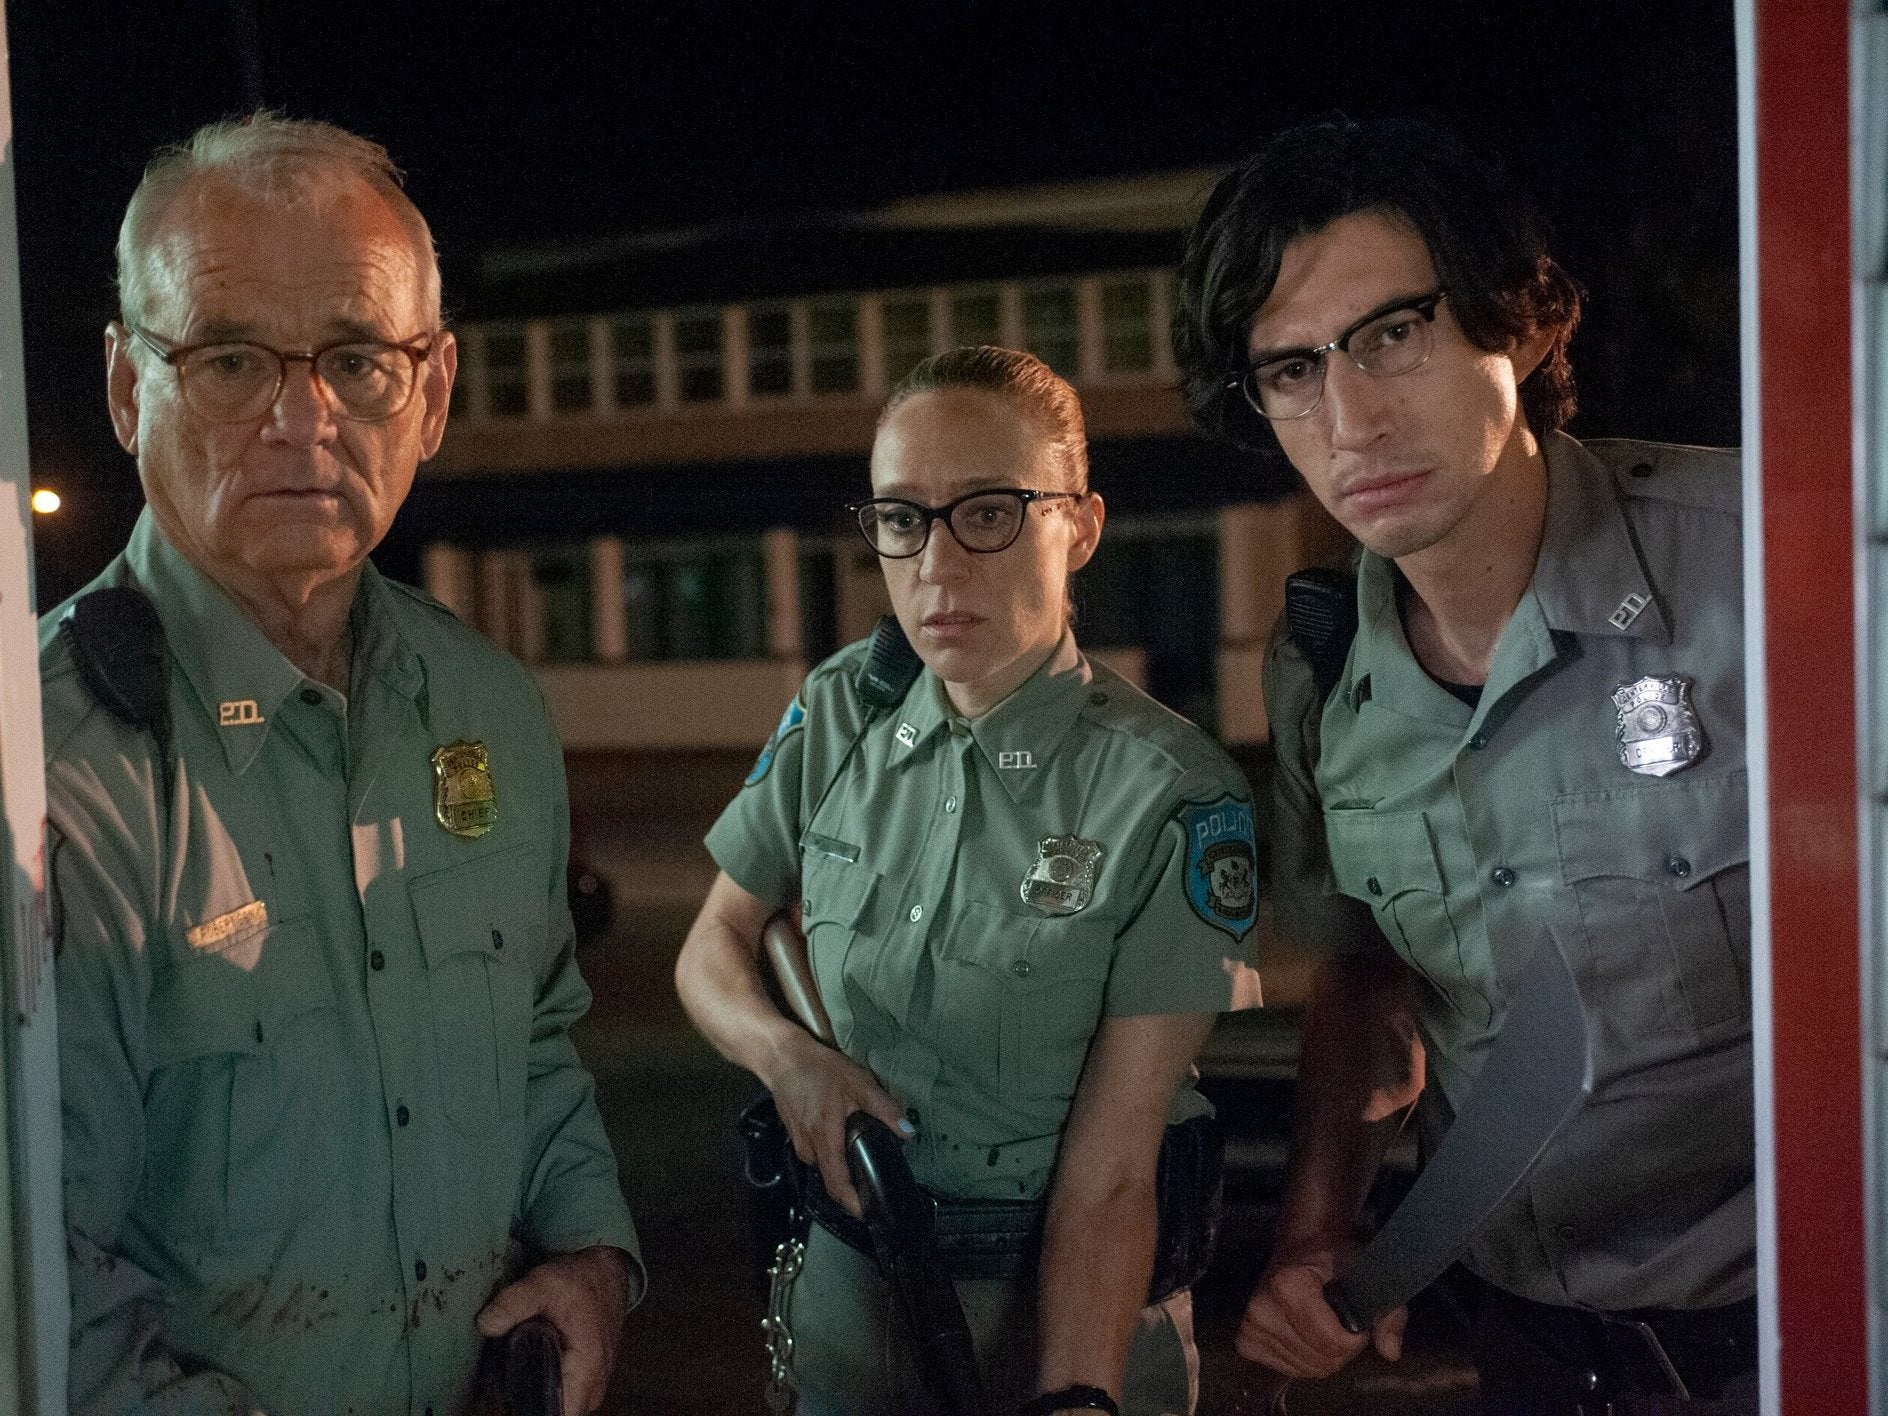 The Dead Don't Die, review: Jim Jarmusch fails to bring new life to the zombie genre